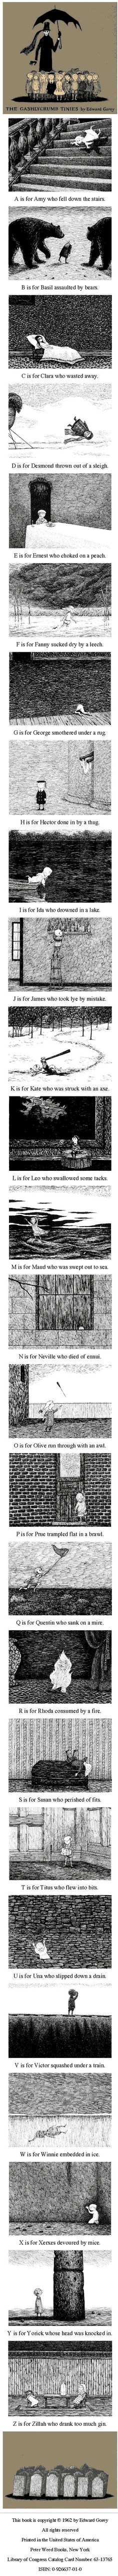 The Gashlycrumb Tinies ~ Edward Gorey - 1962